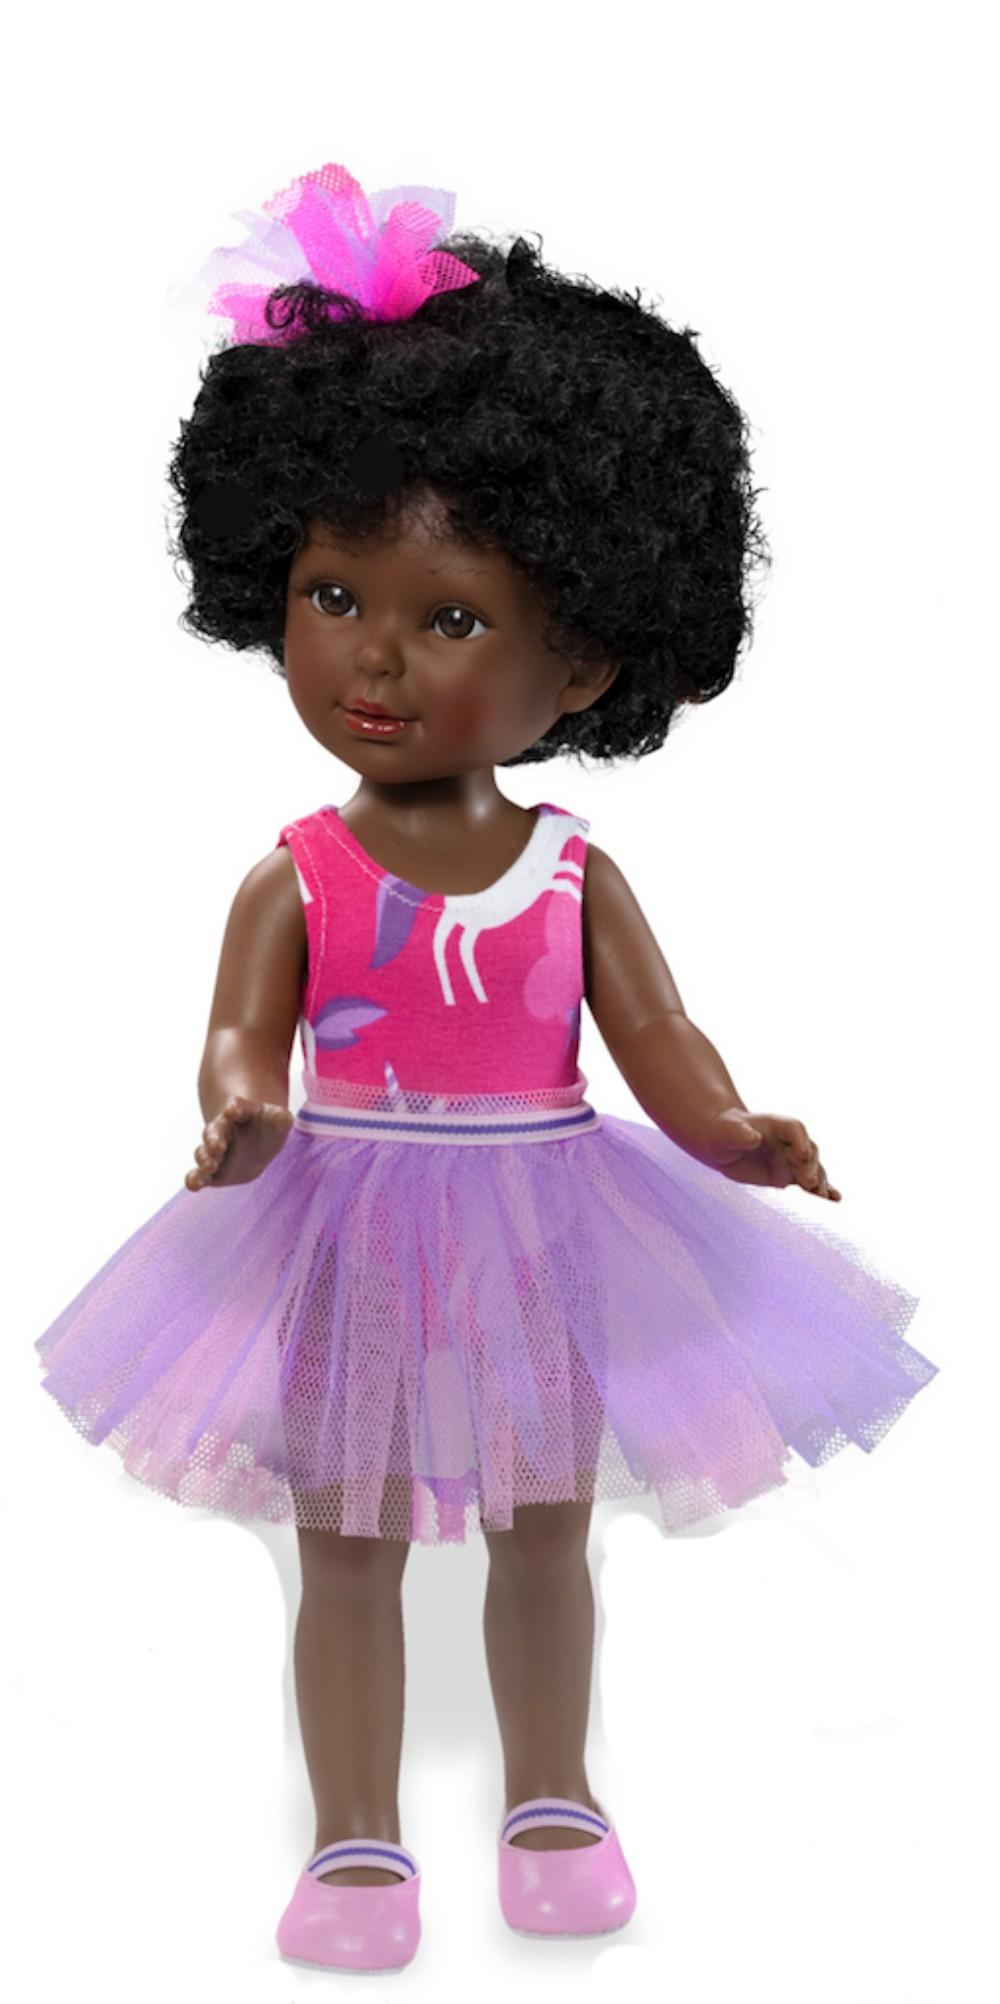 paulina afro doll with purple tutu